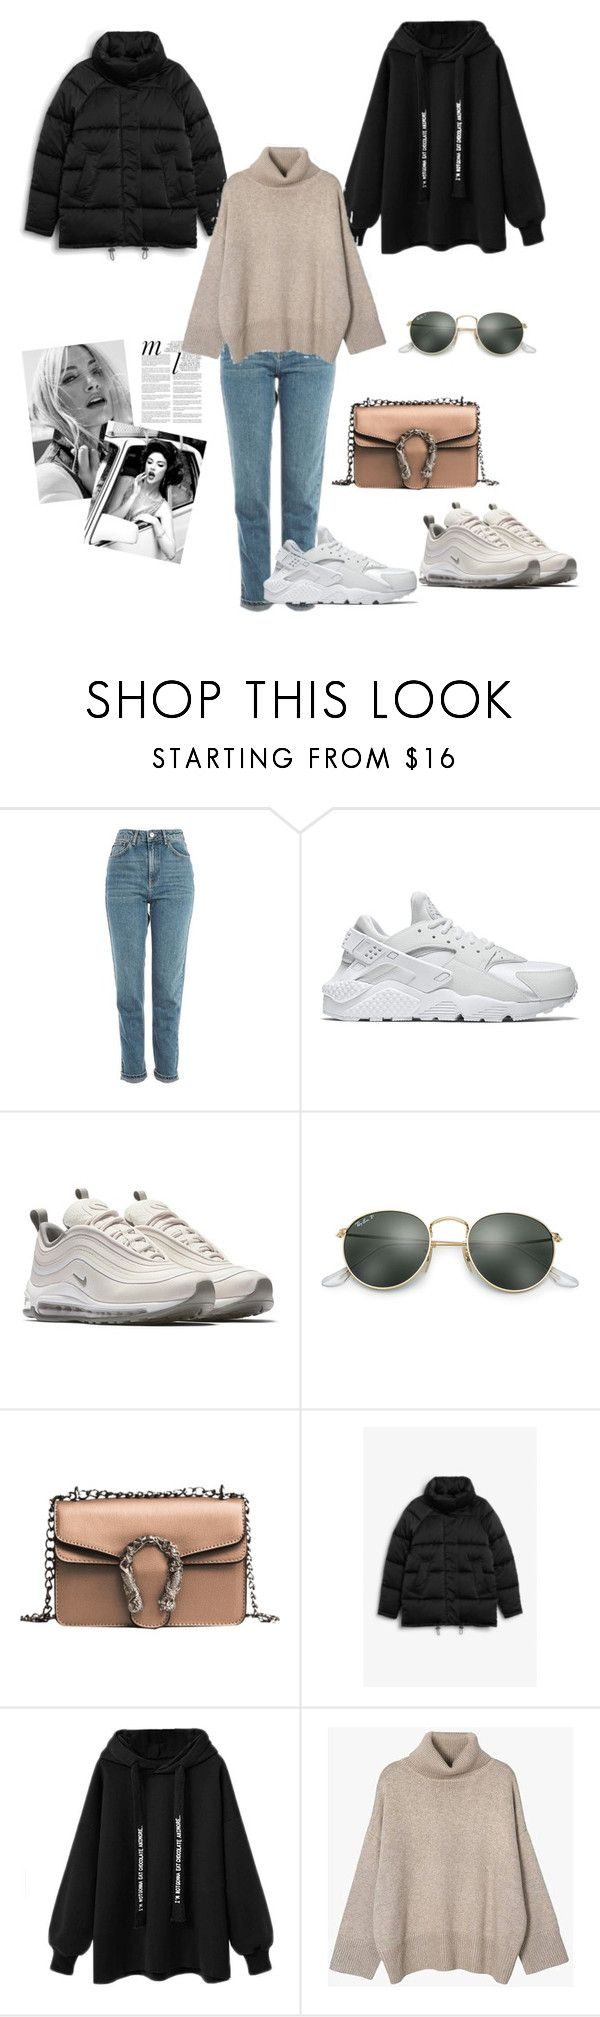 """Budget"" by victoria-191 on Polyvore featuring Topshop, NIKE, Whiteley, Ray-Ban and Monki"